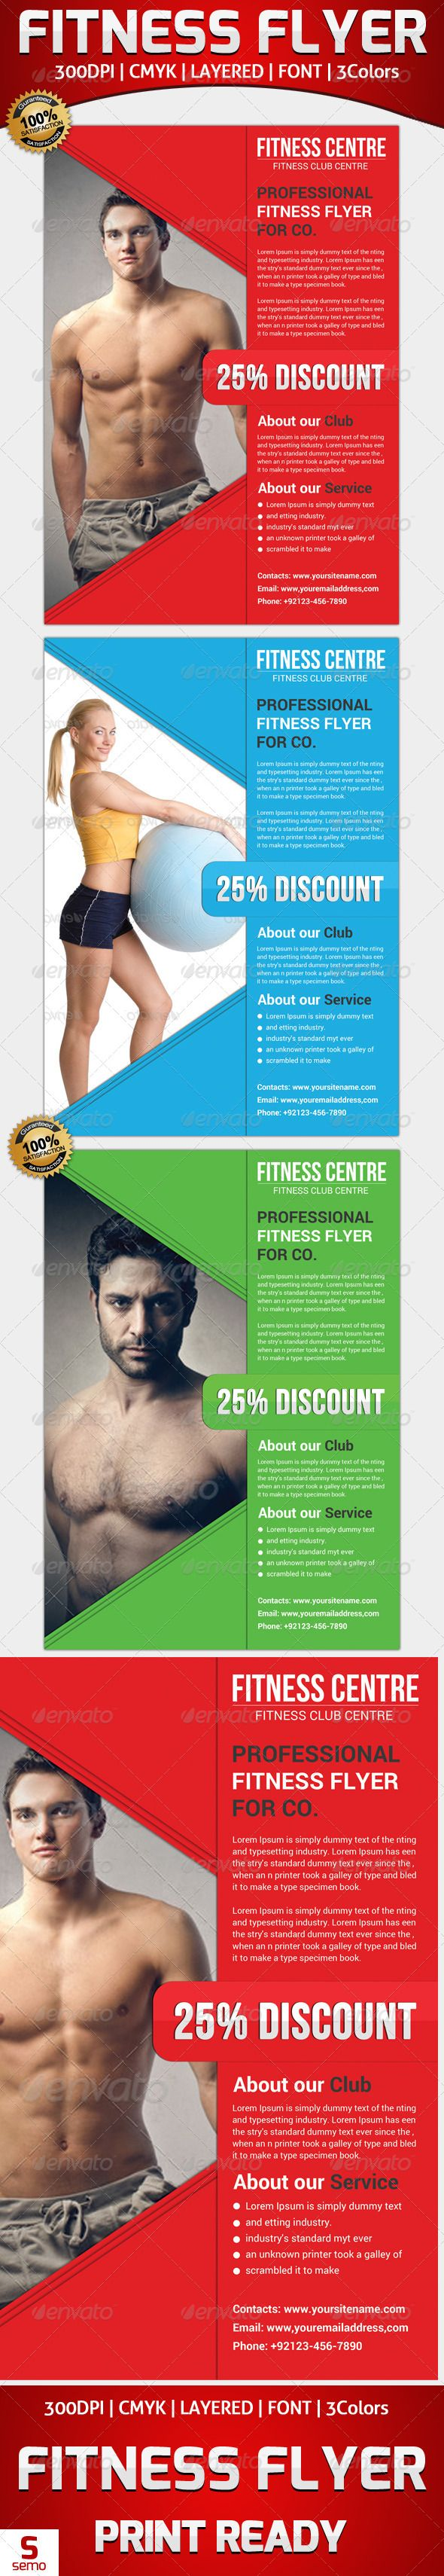 Poster design rates - Find This Pin And More On Flyer Design By Jdeangelis